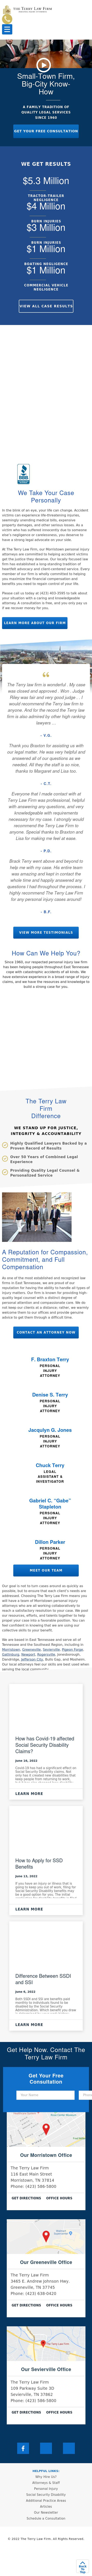 The Terry Law Firm - Morristown TN Lawyers